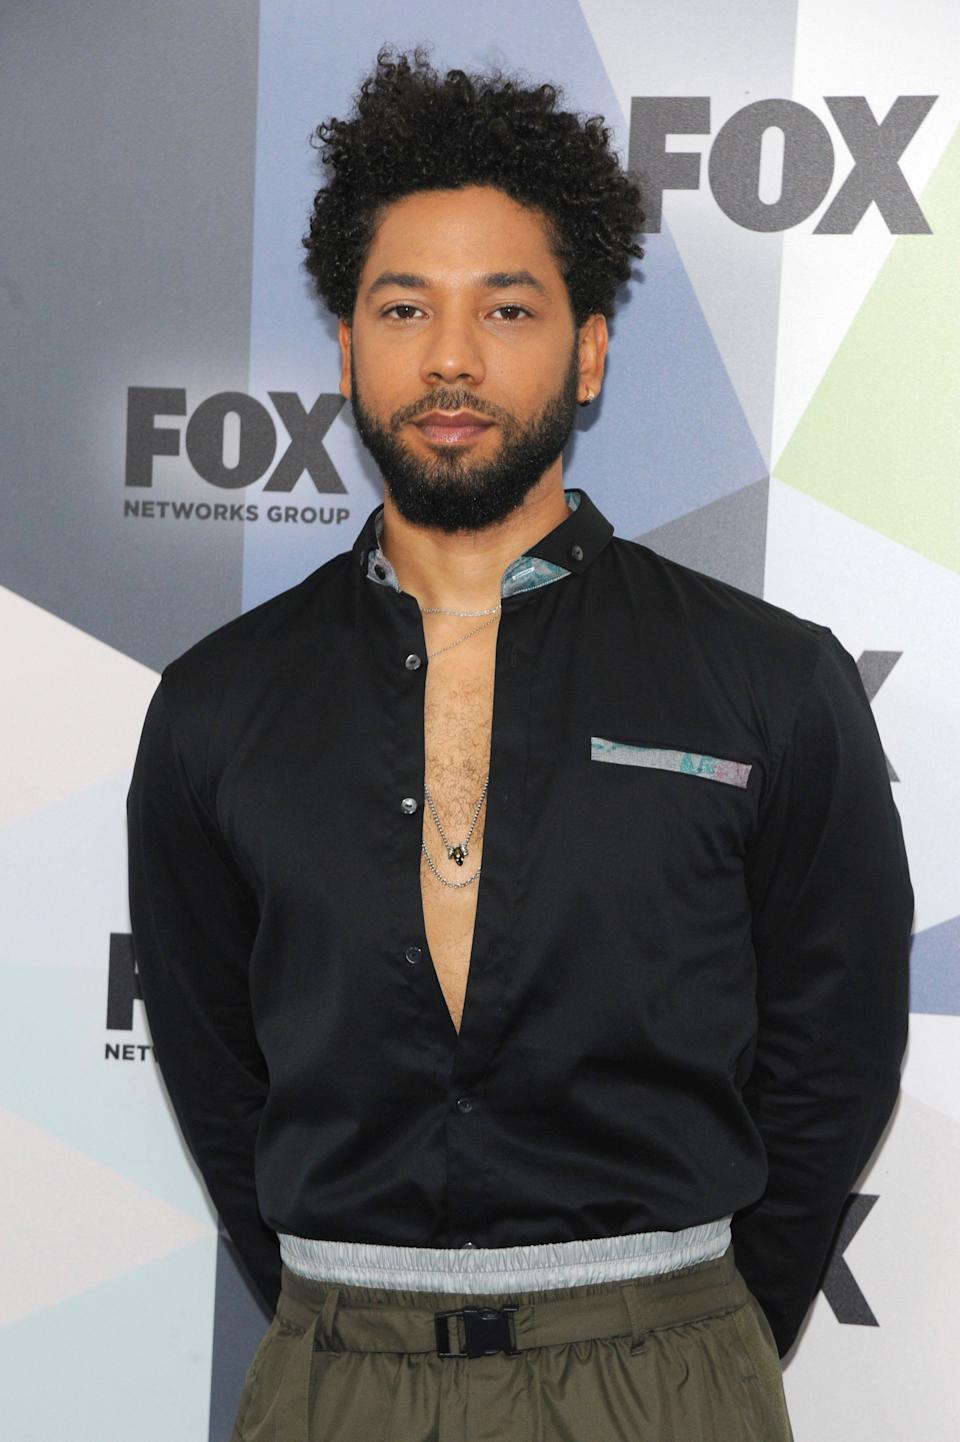 """Chicago police confirmed that the trajectory of their investigation into the alleged attack on <a href=""""https://www.huffingtonpost.com/topic/jussie-smollett"""" target=""""_blank"""" rel=""""noopener noreferrer"""">Jussie Smollett</a> has """"shifted."""" (Photo: John Palmer/MediaPunch/IPx)"""